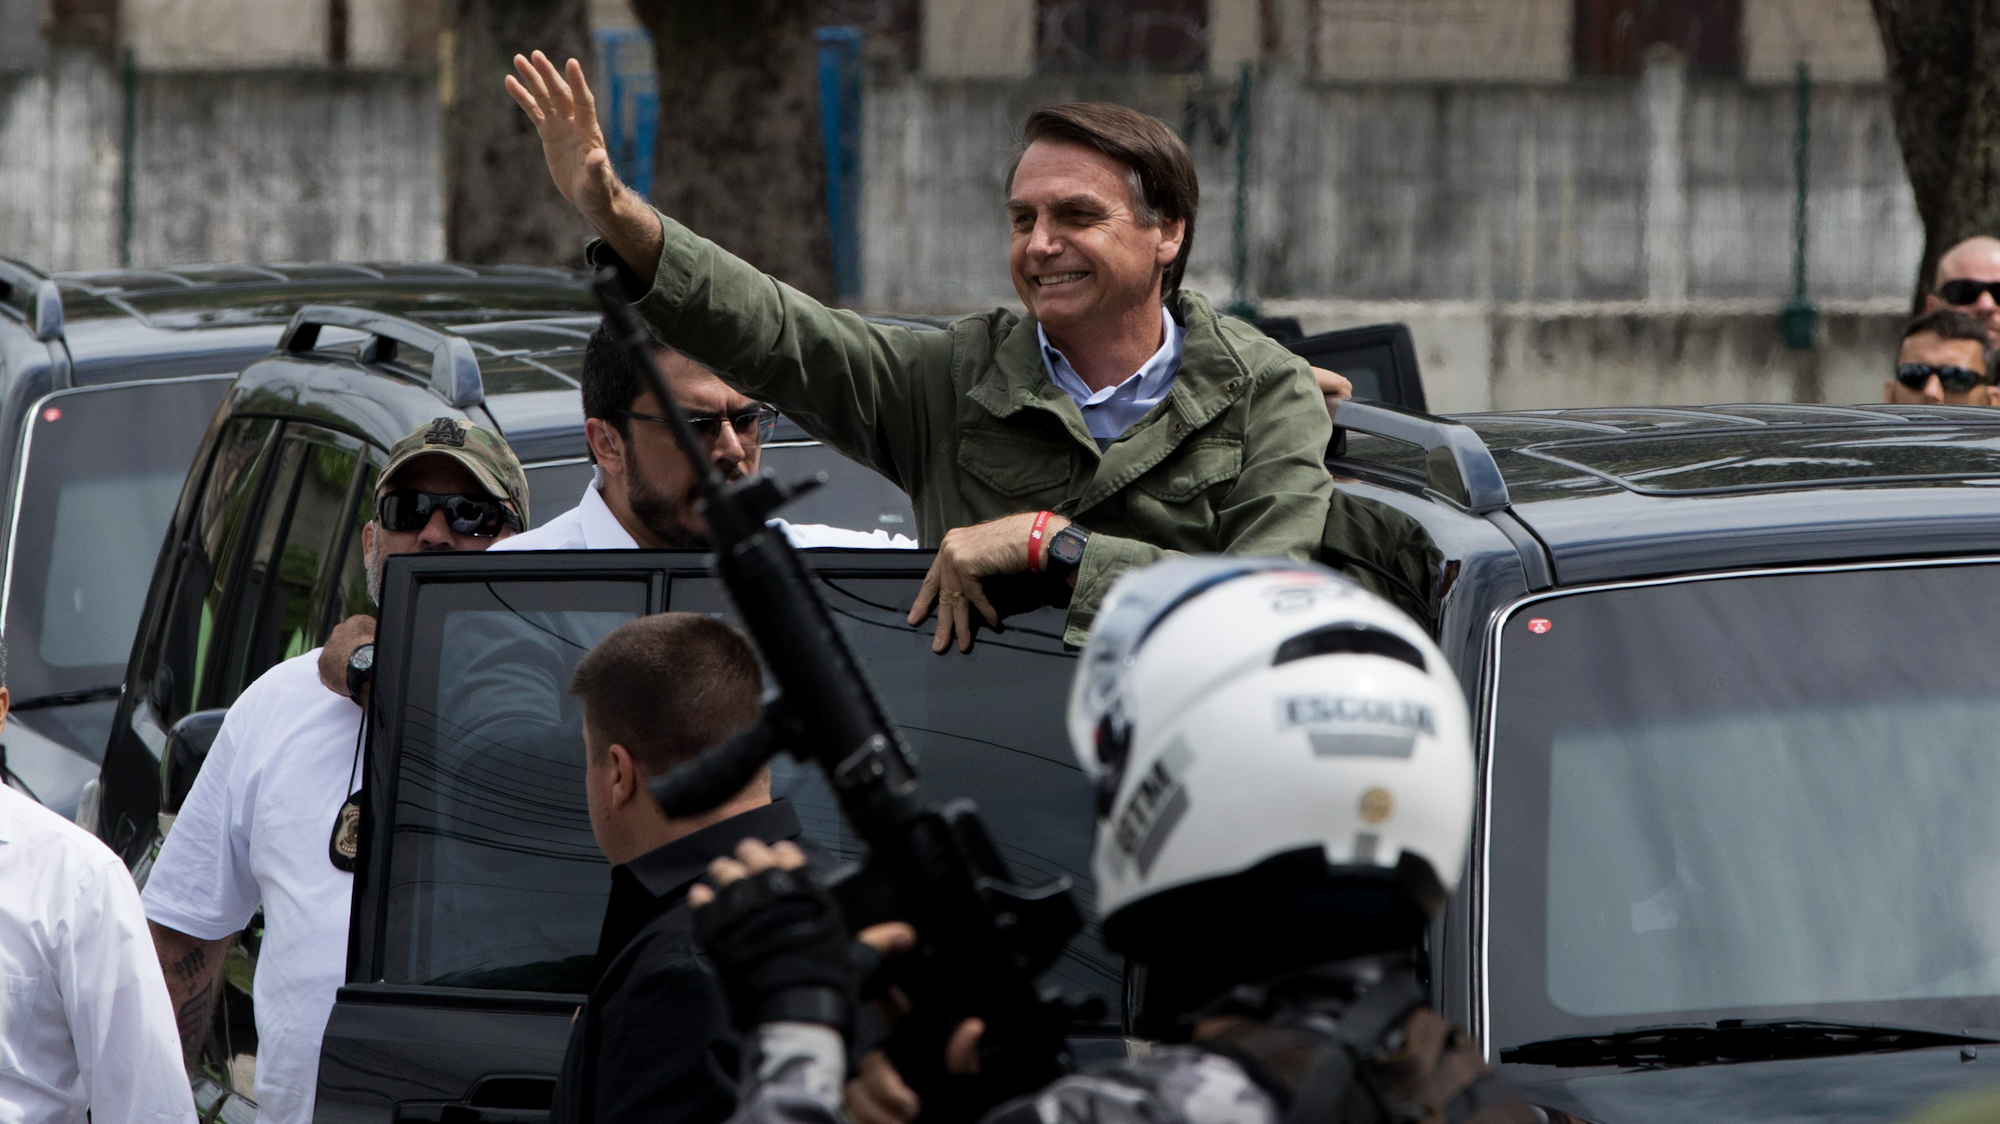 Welcome to the Jungle: Jair Bolsonaro Brings Perfect Storm of Fascism and Neoliberalism to Brazil